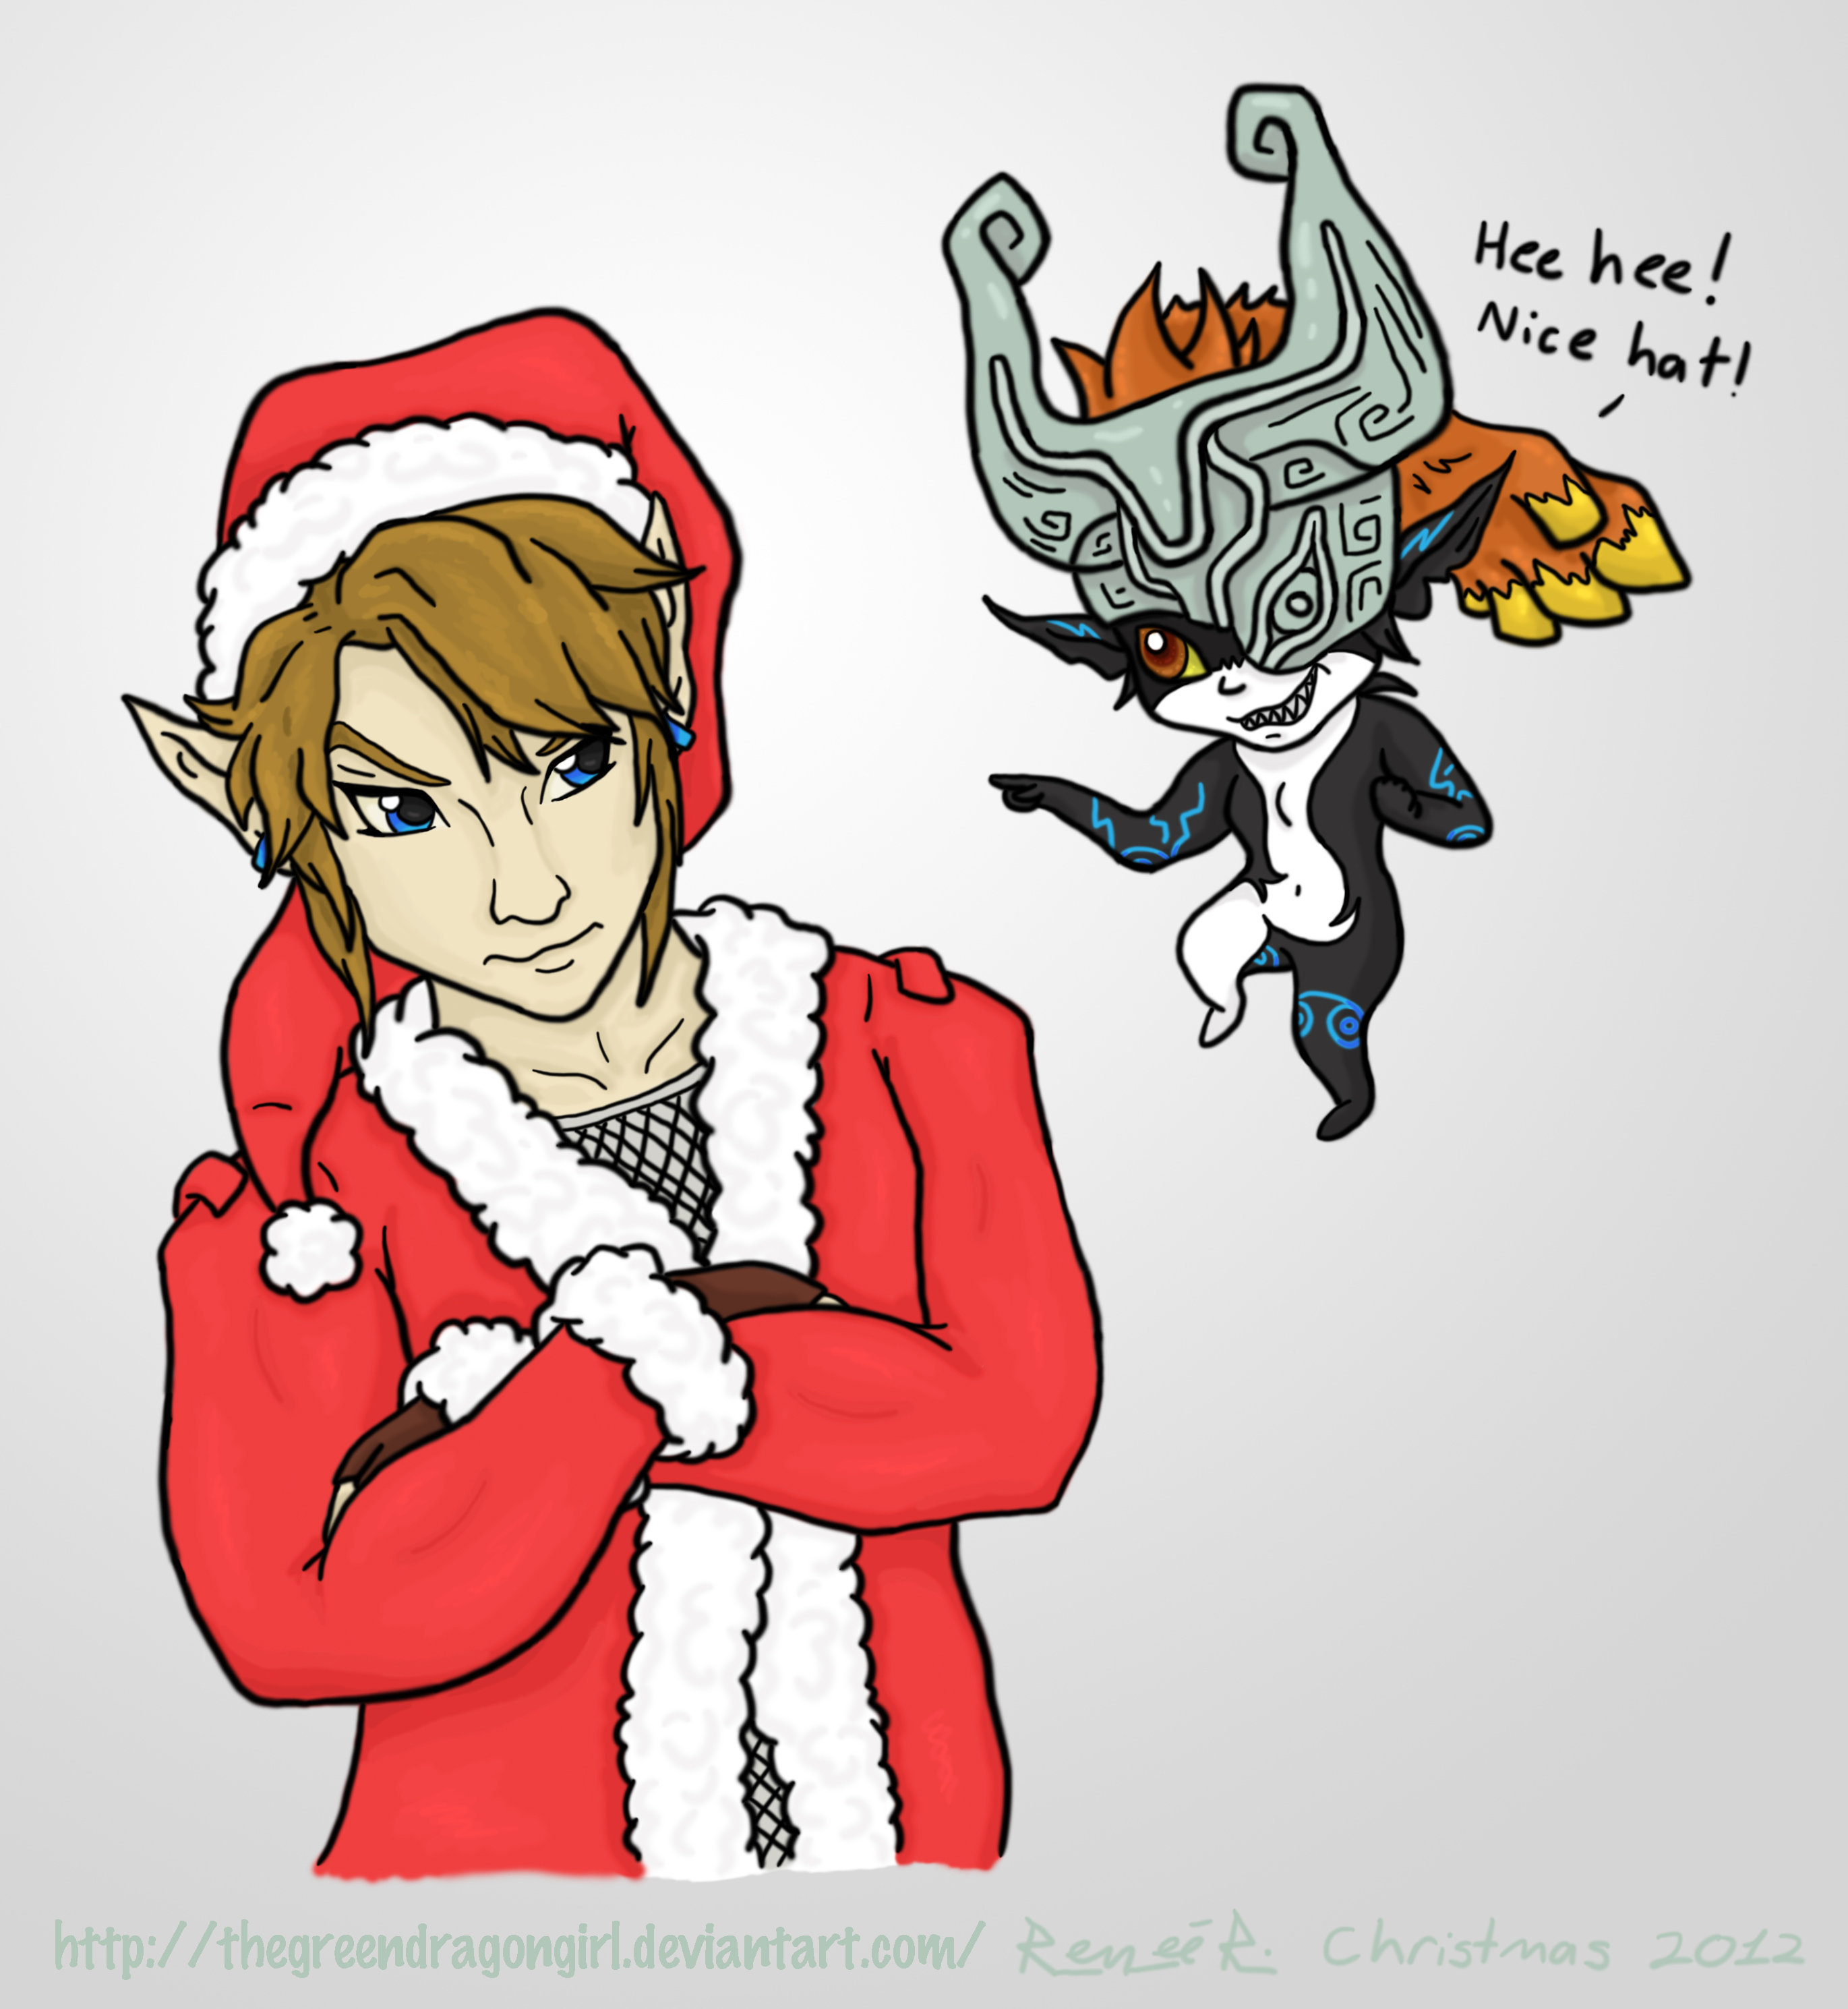 Midna and Link - Christmas 2012 by TheGreenDragonGirl on DeviantArt